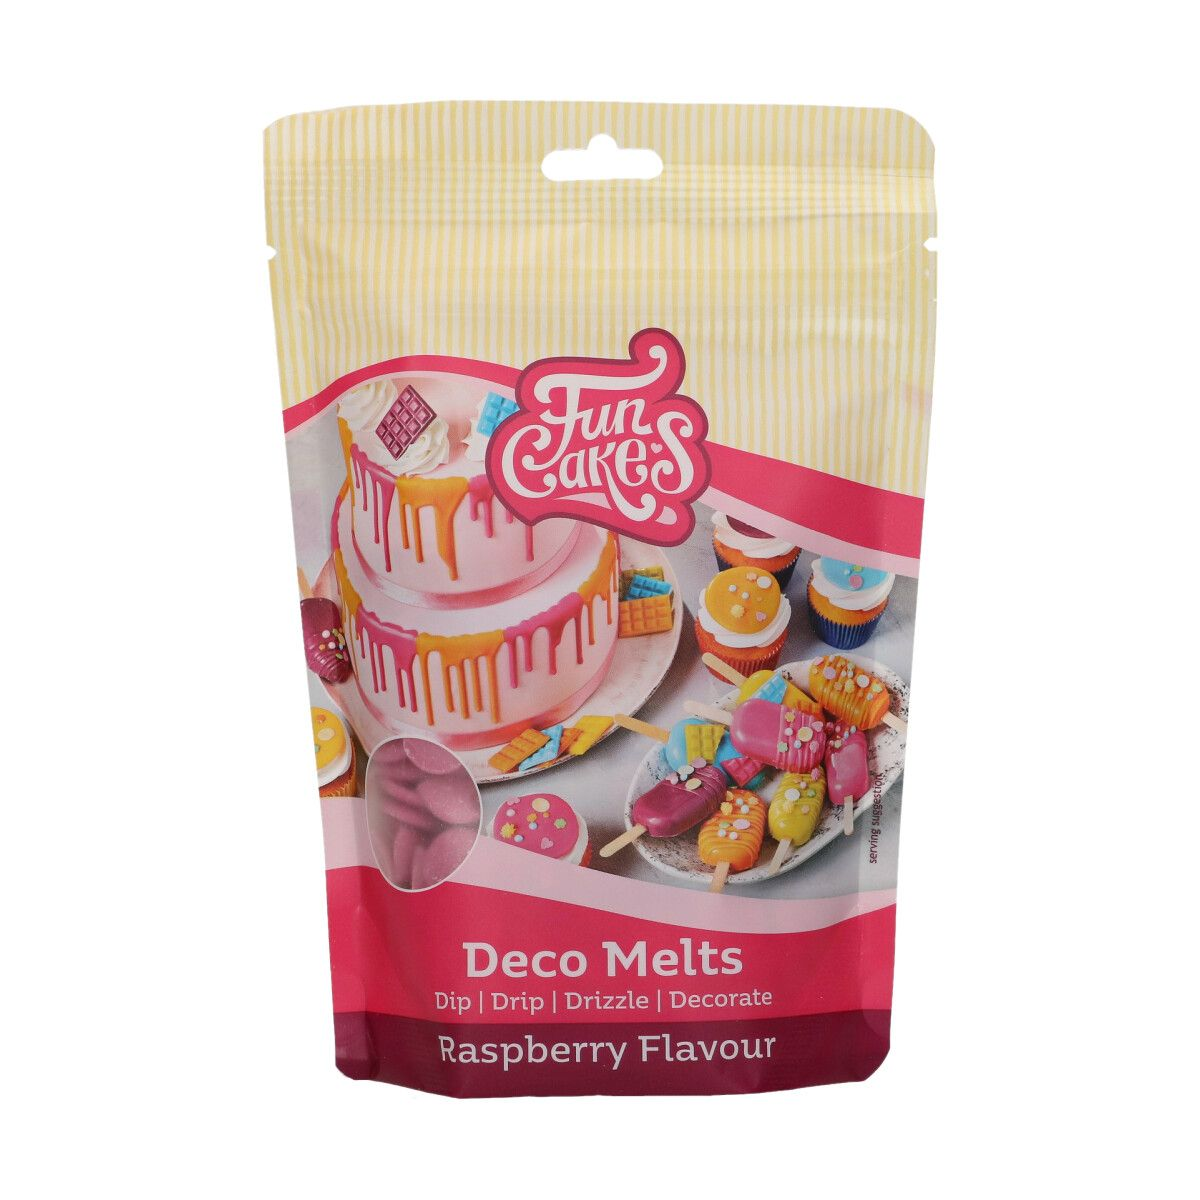 FunCakes Deco Melts - Raspberry Flavour- 250g